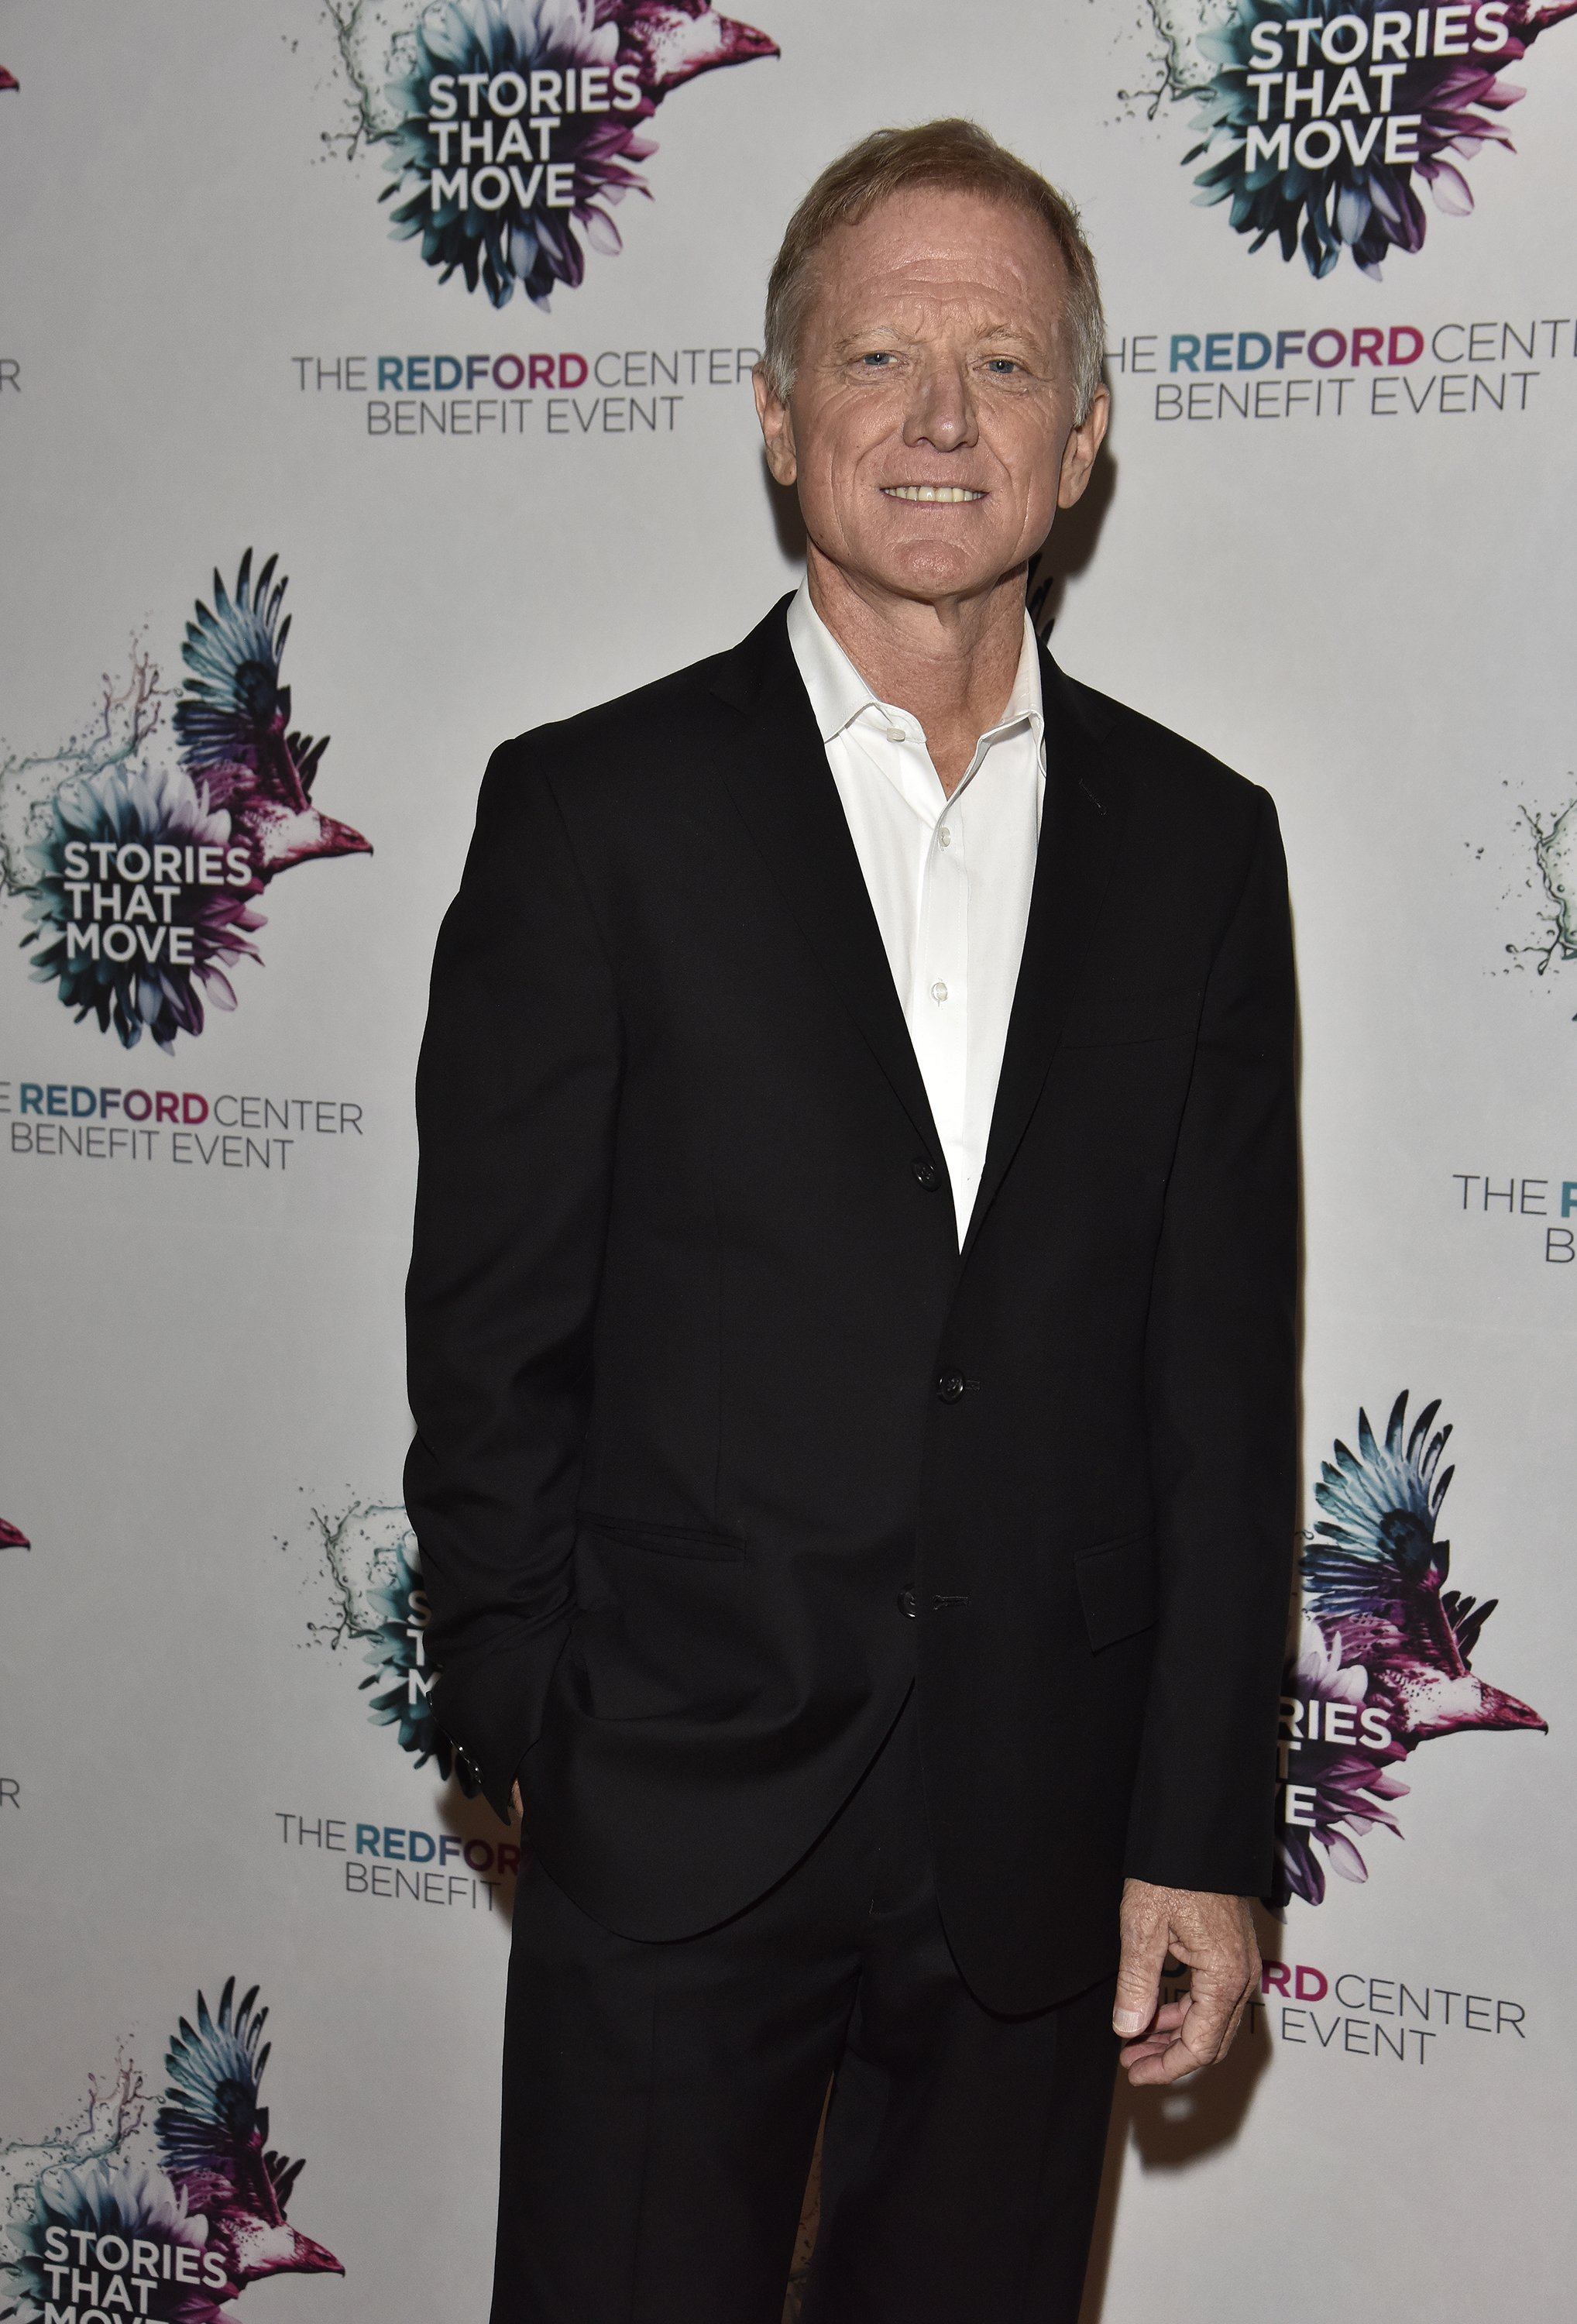 James Redford attends The Redford Center's Benefit on December 6, 2018, in San Francisco, California.   Source: Getty Images.